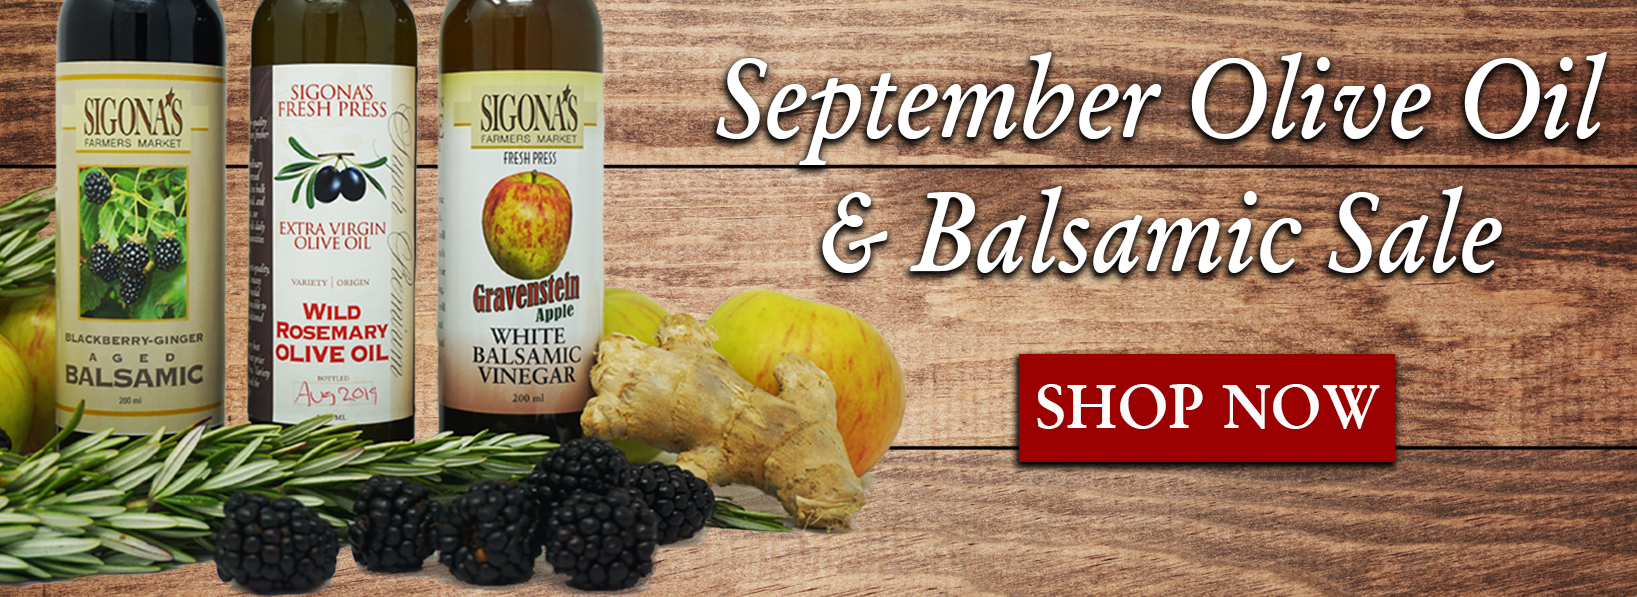 September Oil & Balsamic Sale